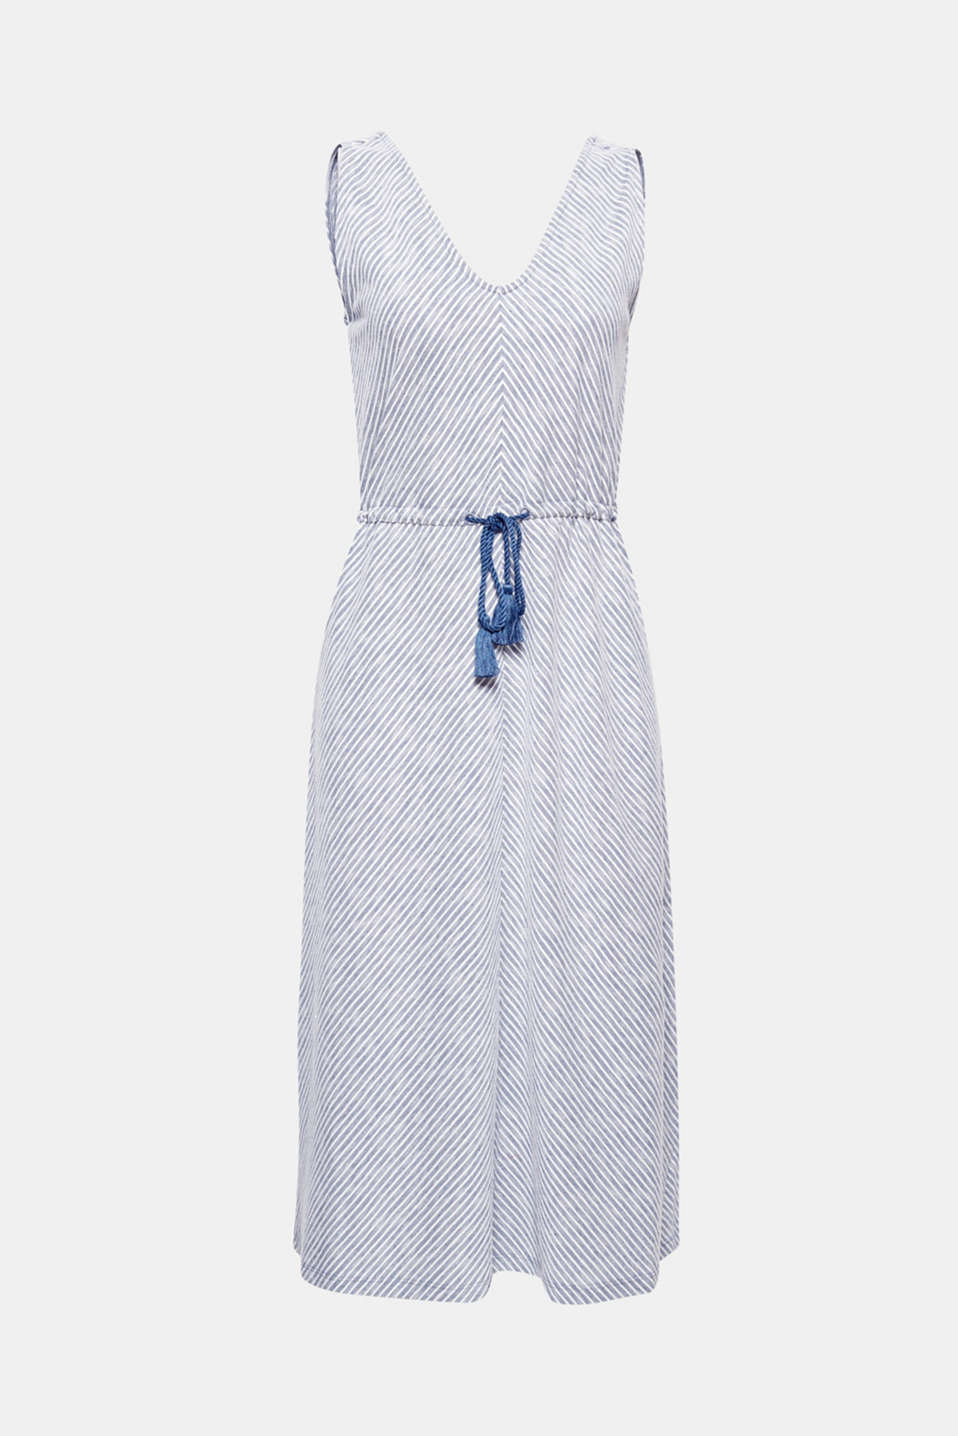 Unbelievably comfortable and a real hit for many different occasions! This dress with two-tone textured stripes and a drawstring waist will quickly become a comfortable, versatile favourite for everyday and leisure wear.